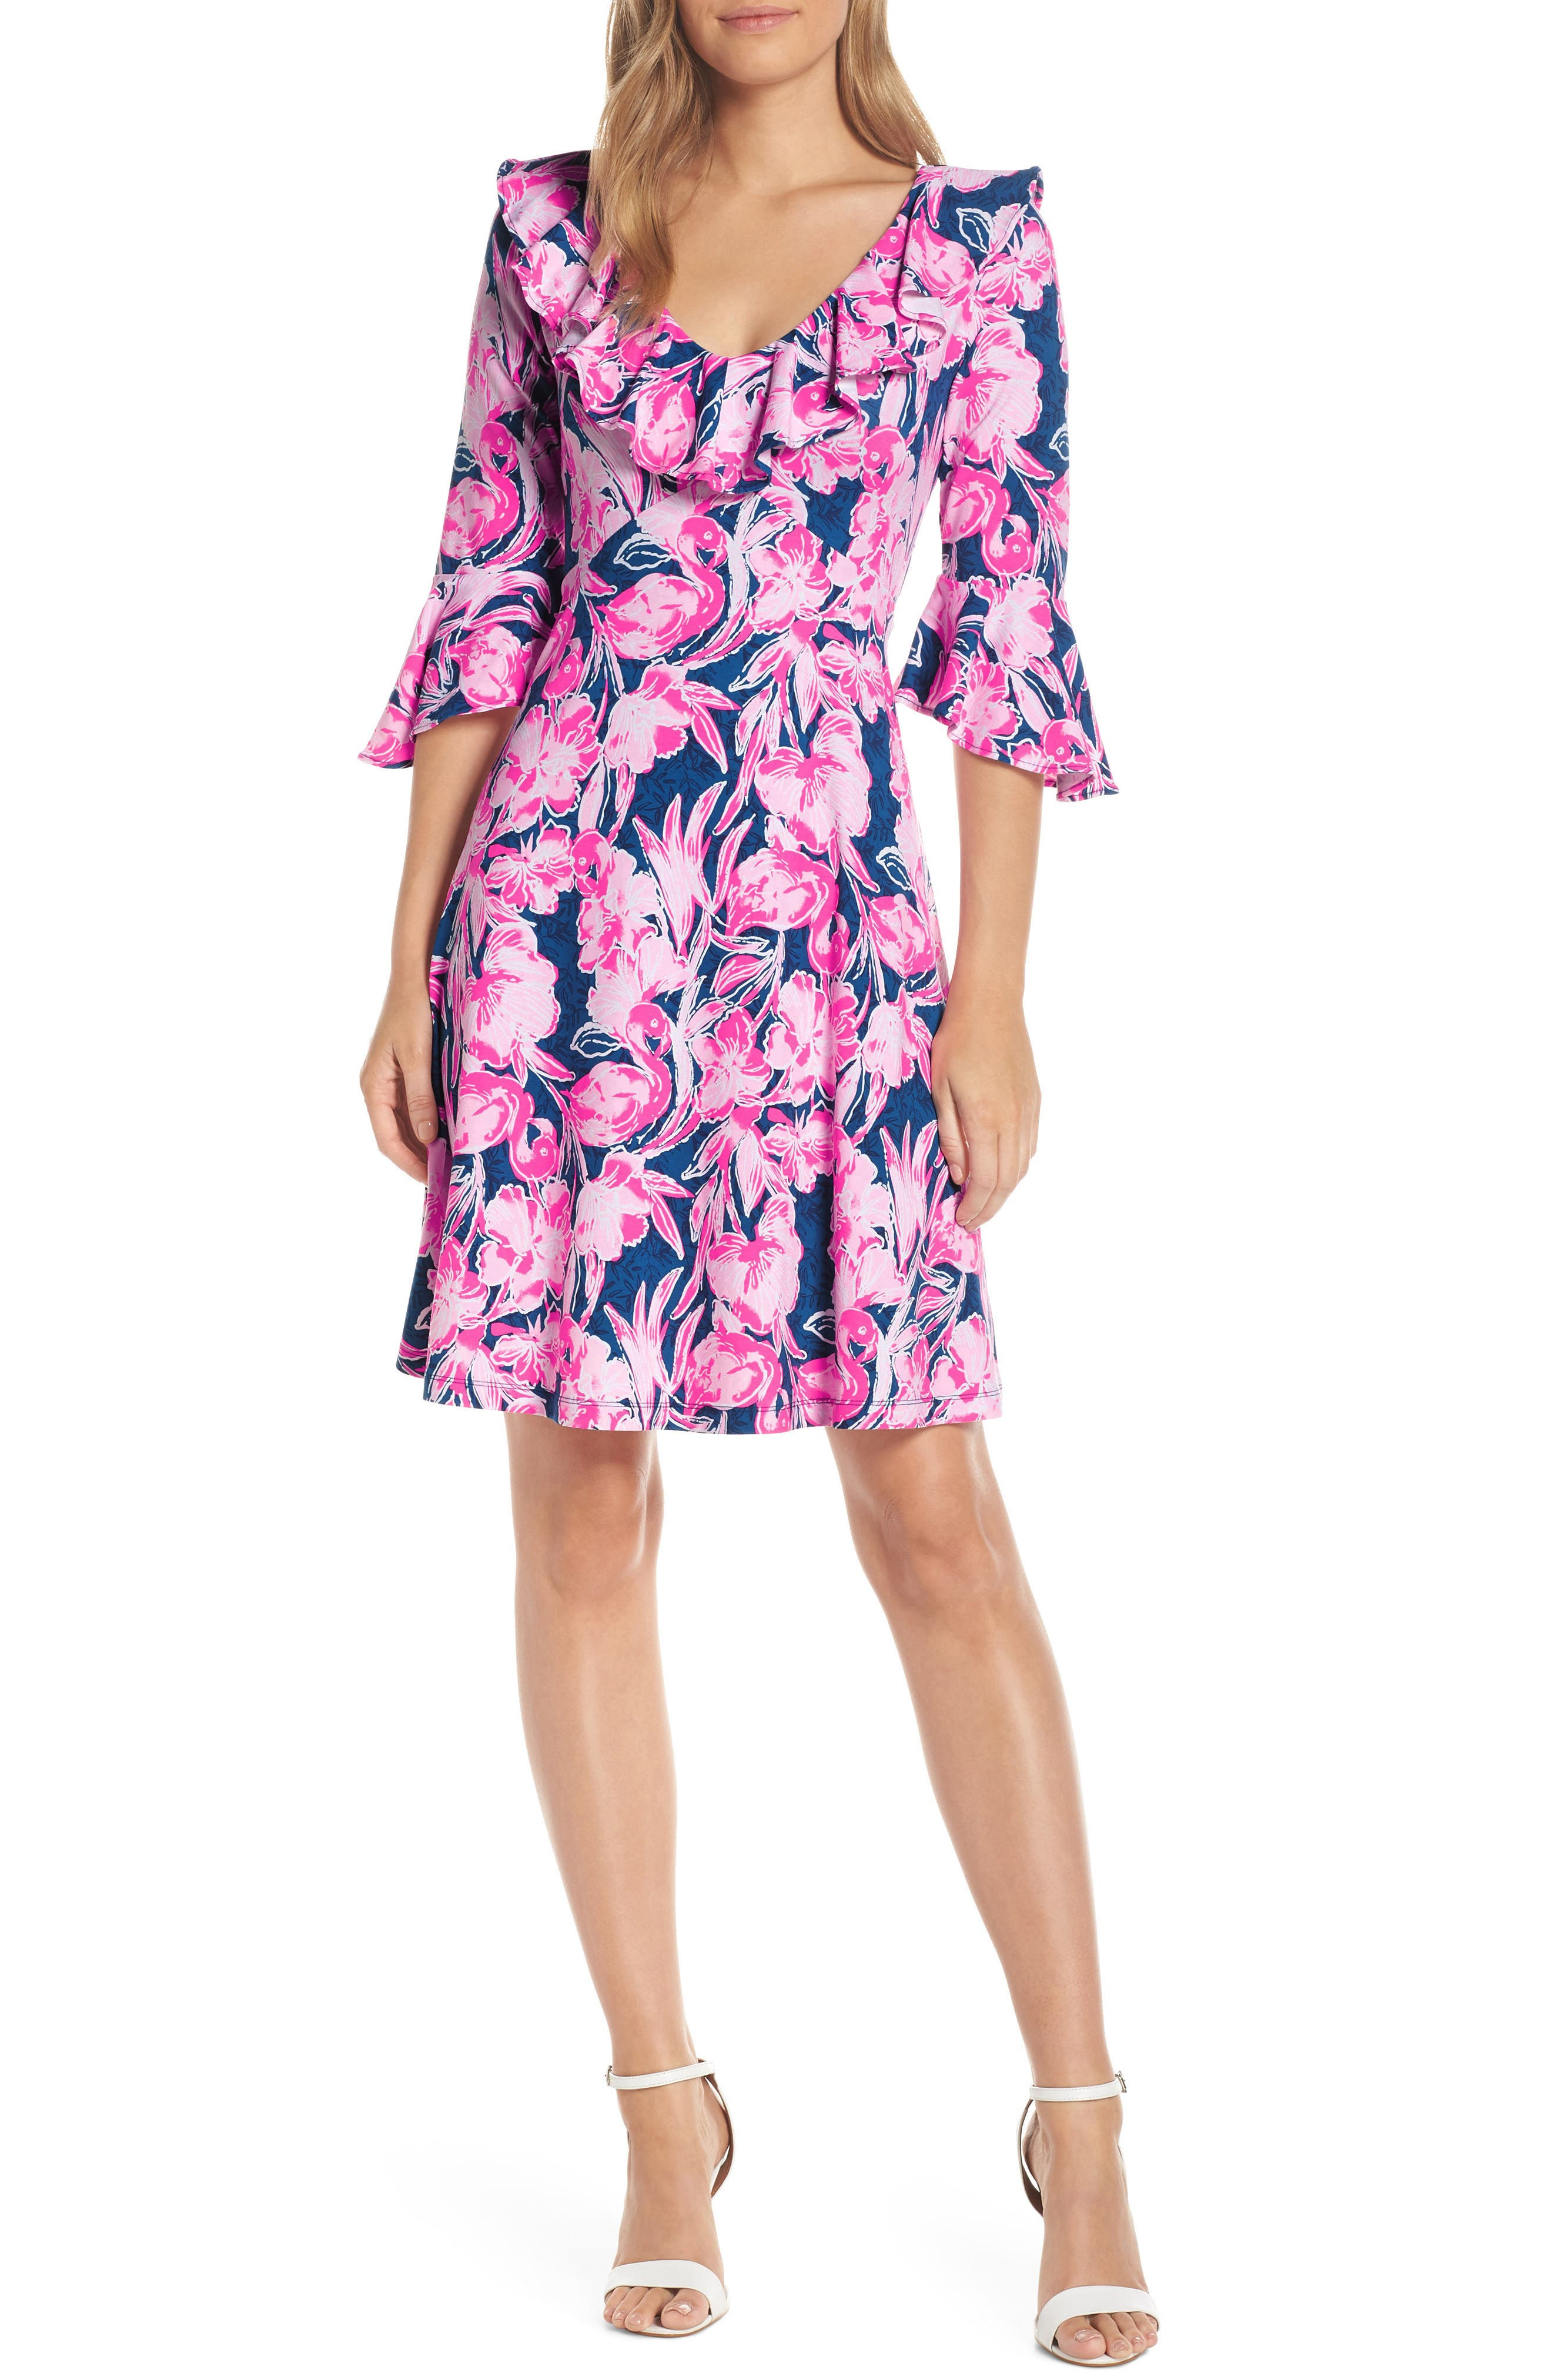 Lilly Pulitzer Stirling Floral Ruffle Dress, Blue